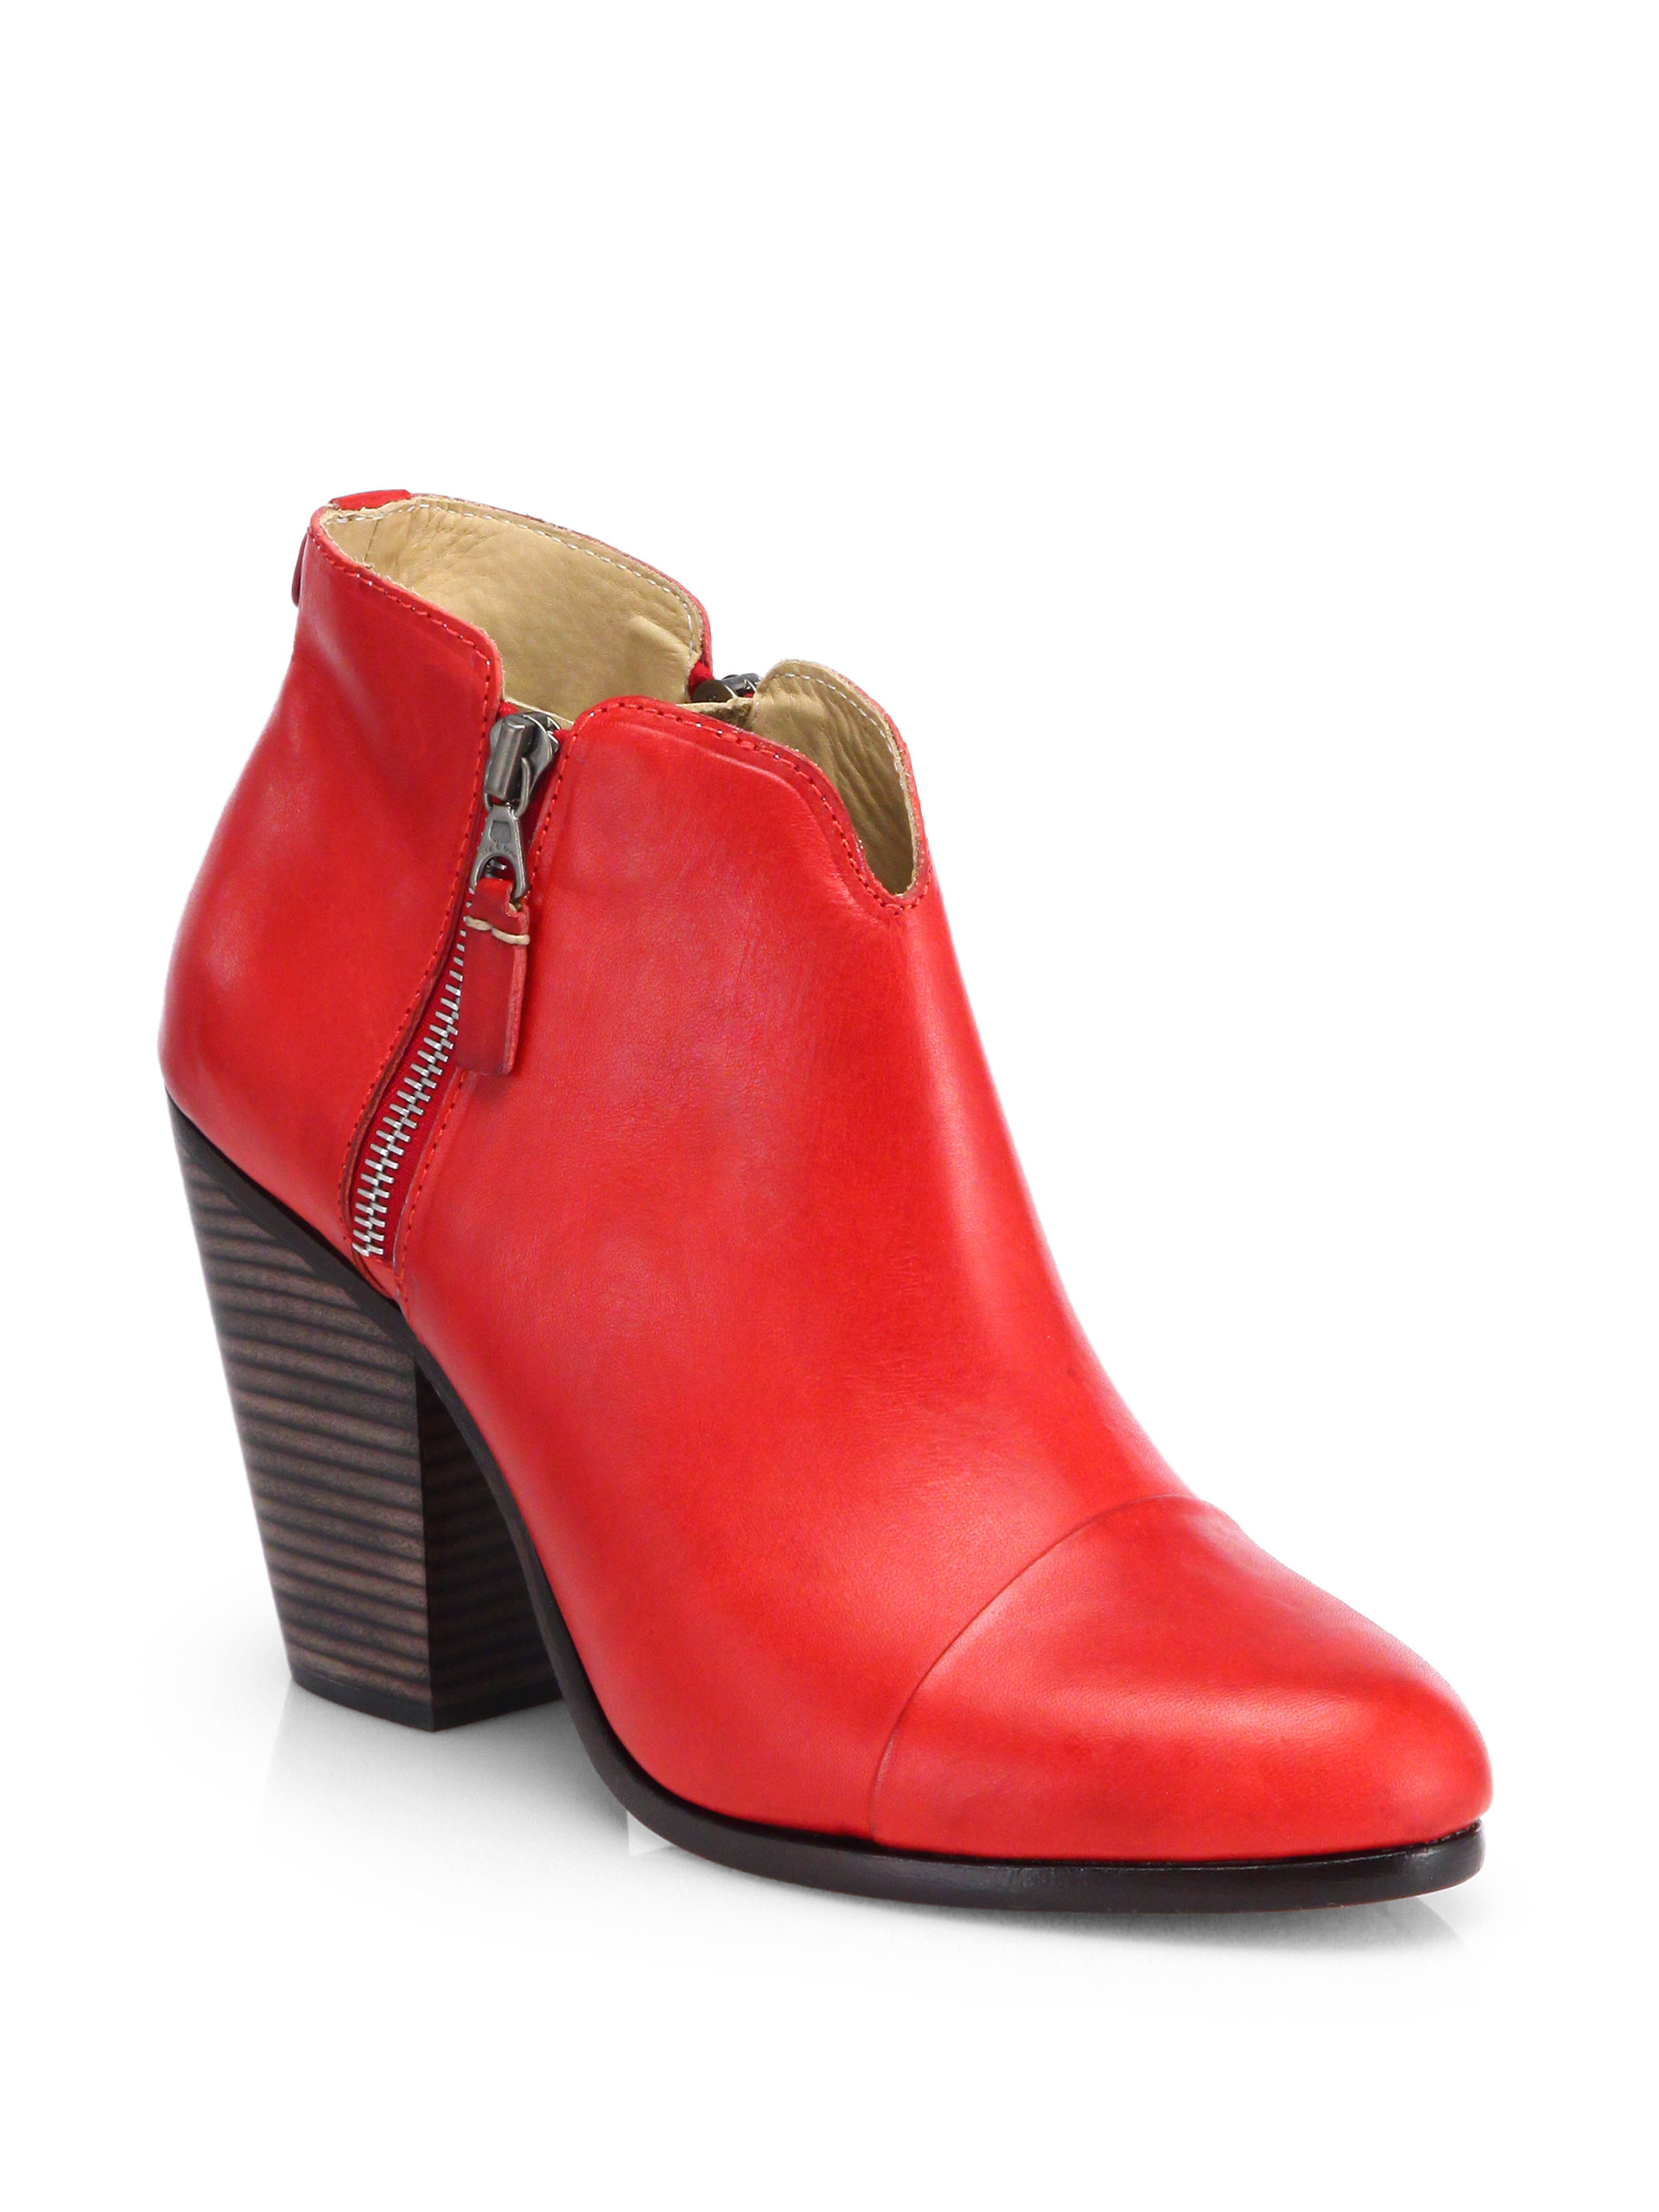 Rag Amp Bone Margot Leather Ankle Boots In Red Lyst